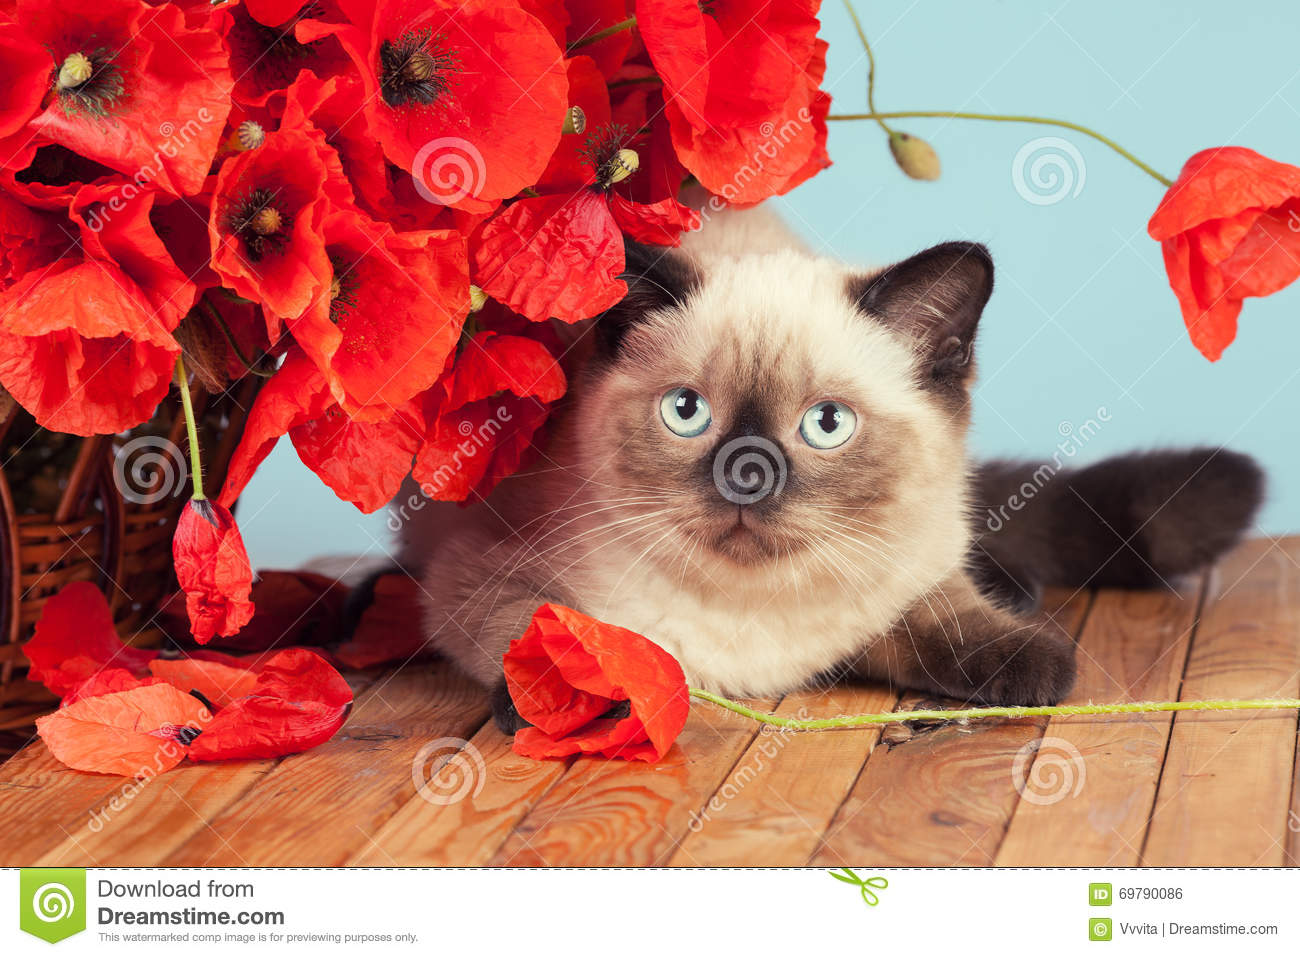 Cat with poppies flowers lying on wooden table